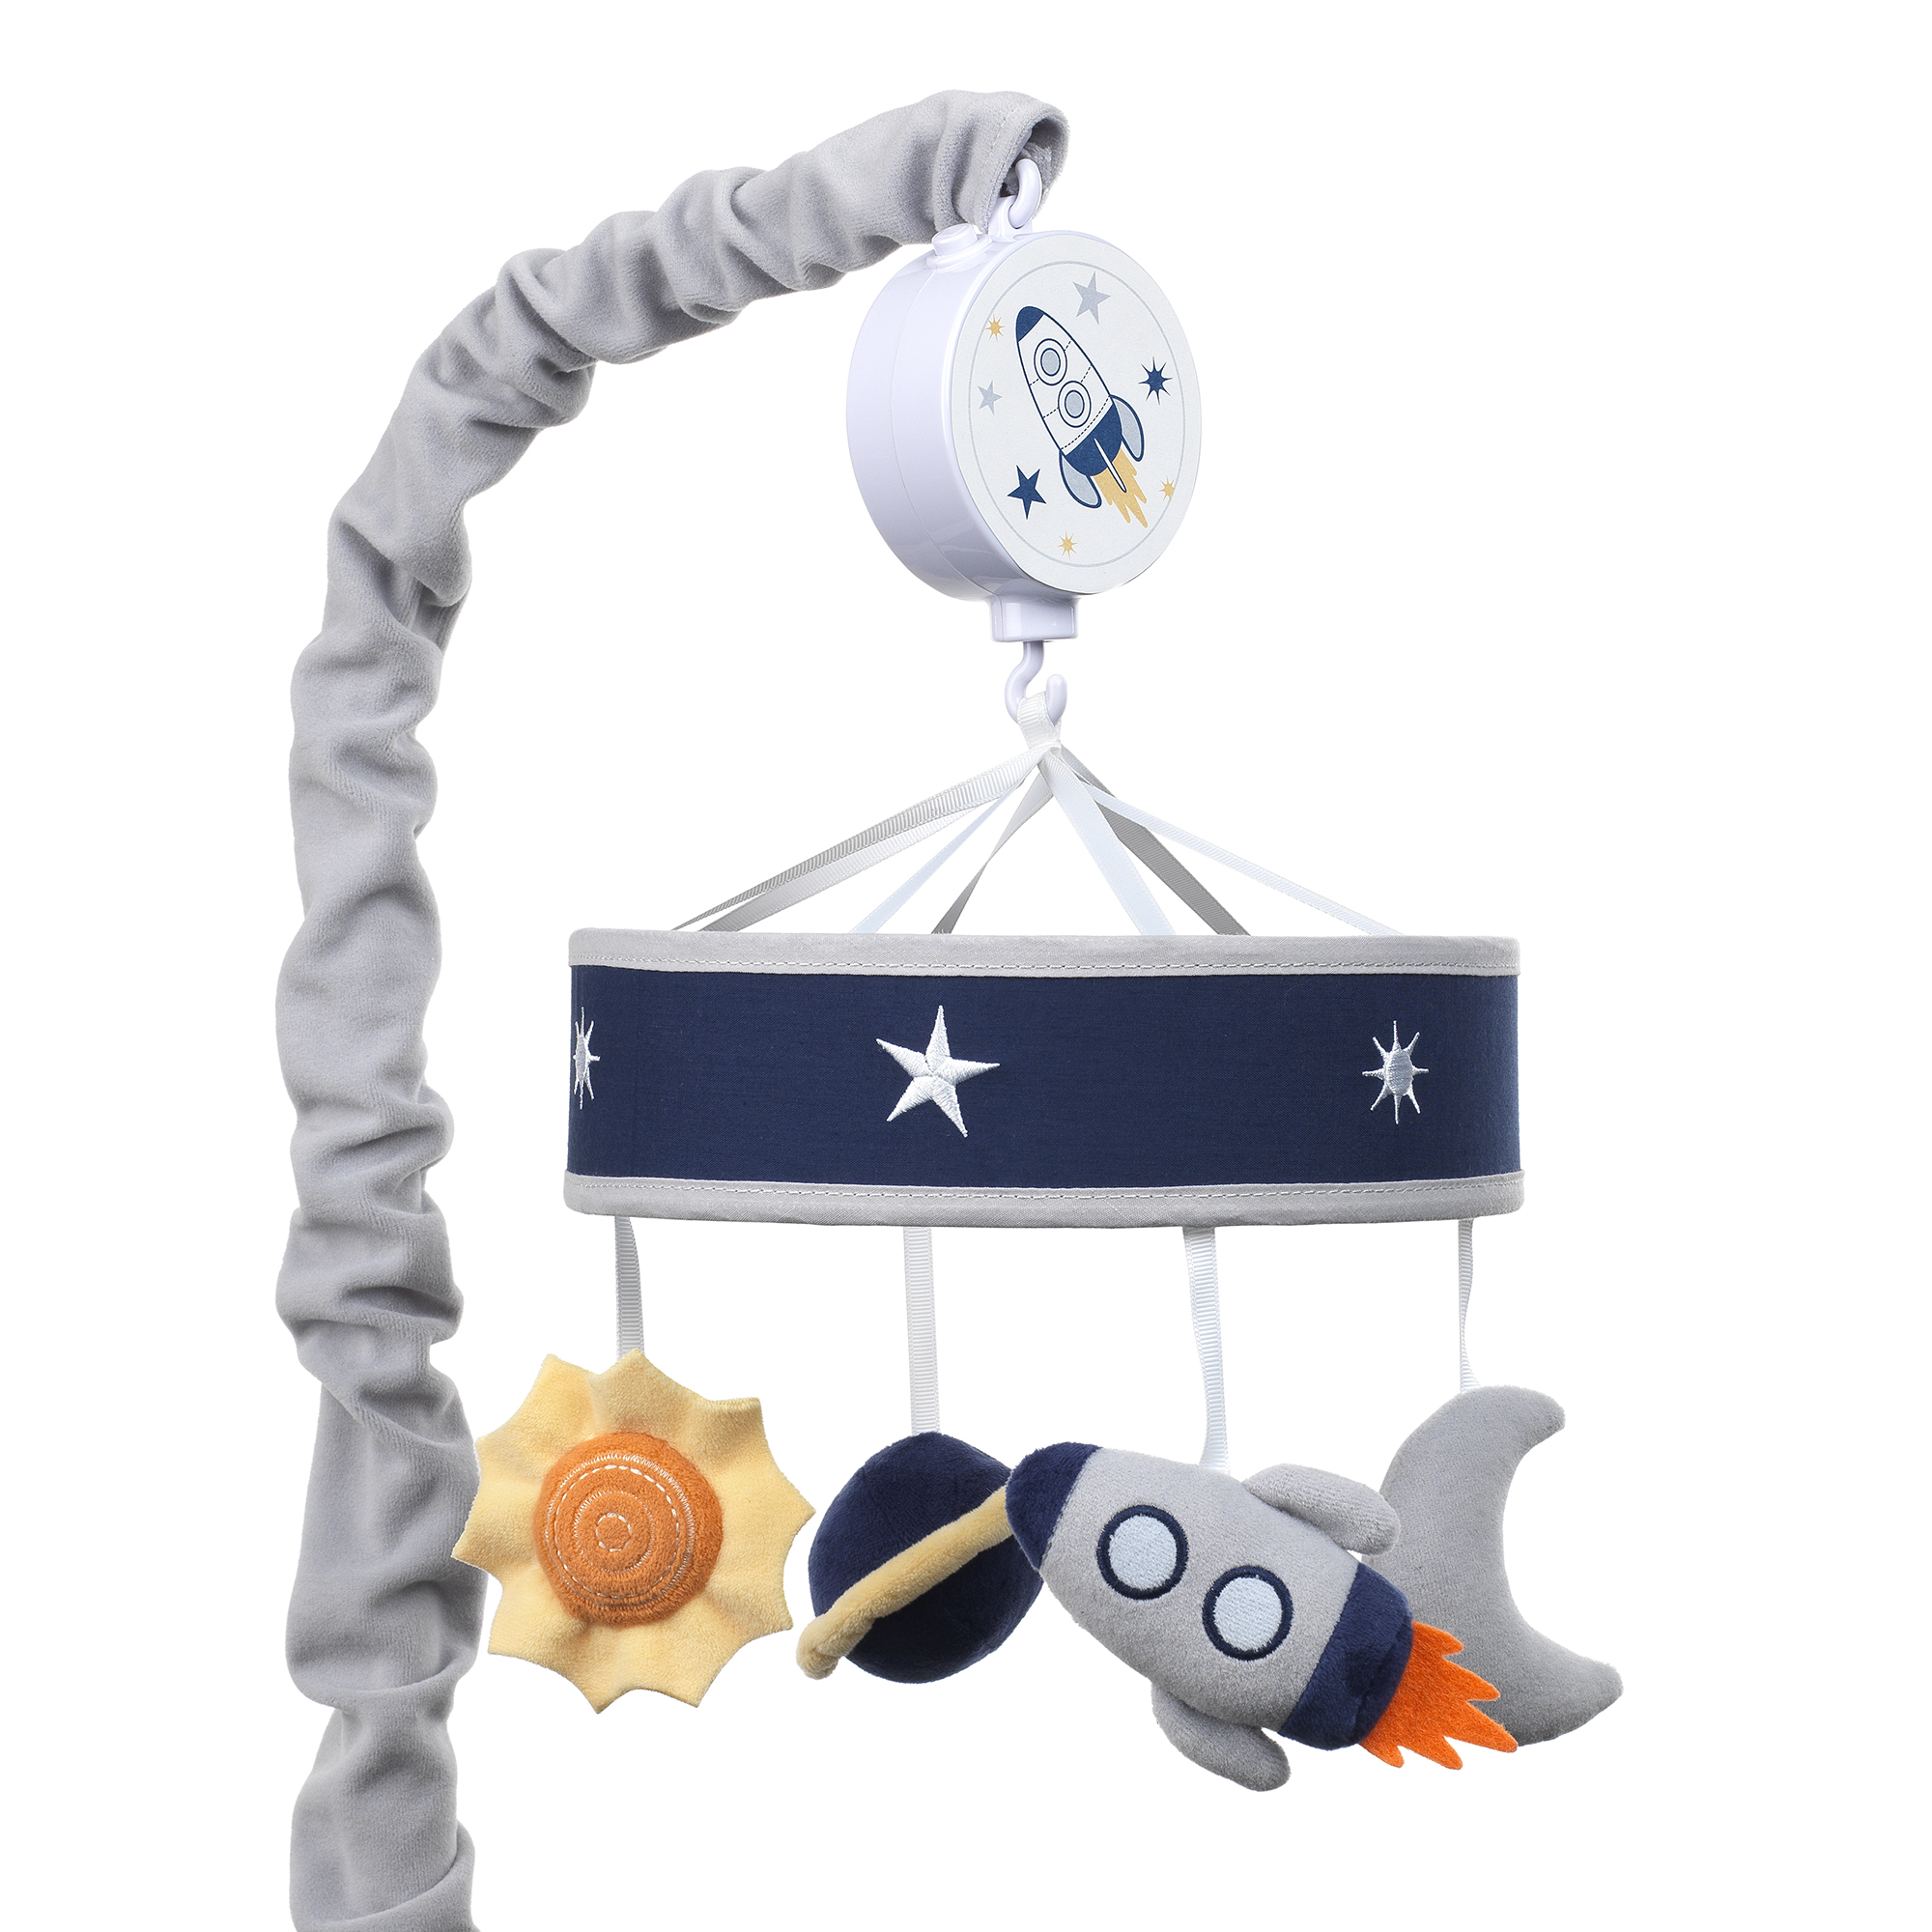 Lambs & Ivy Milky Way Musical Baby Crib Mobile - Blue, Gray, Modern, Celestial